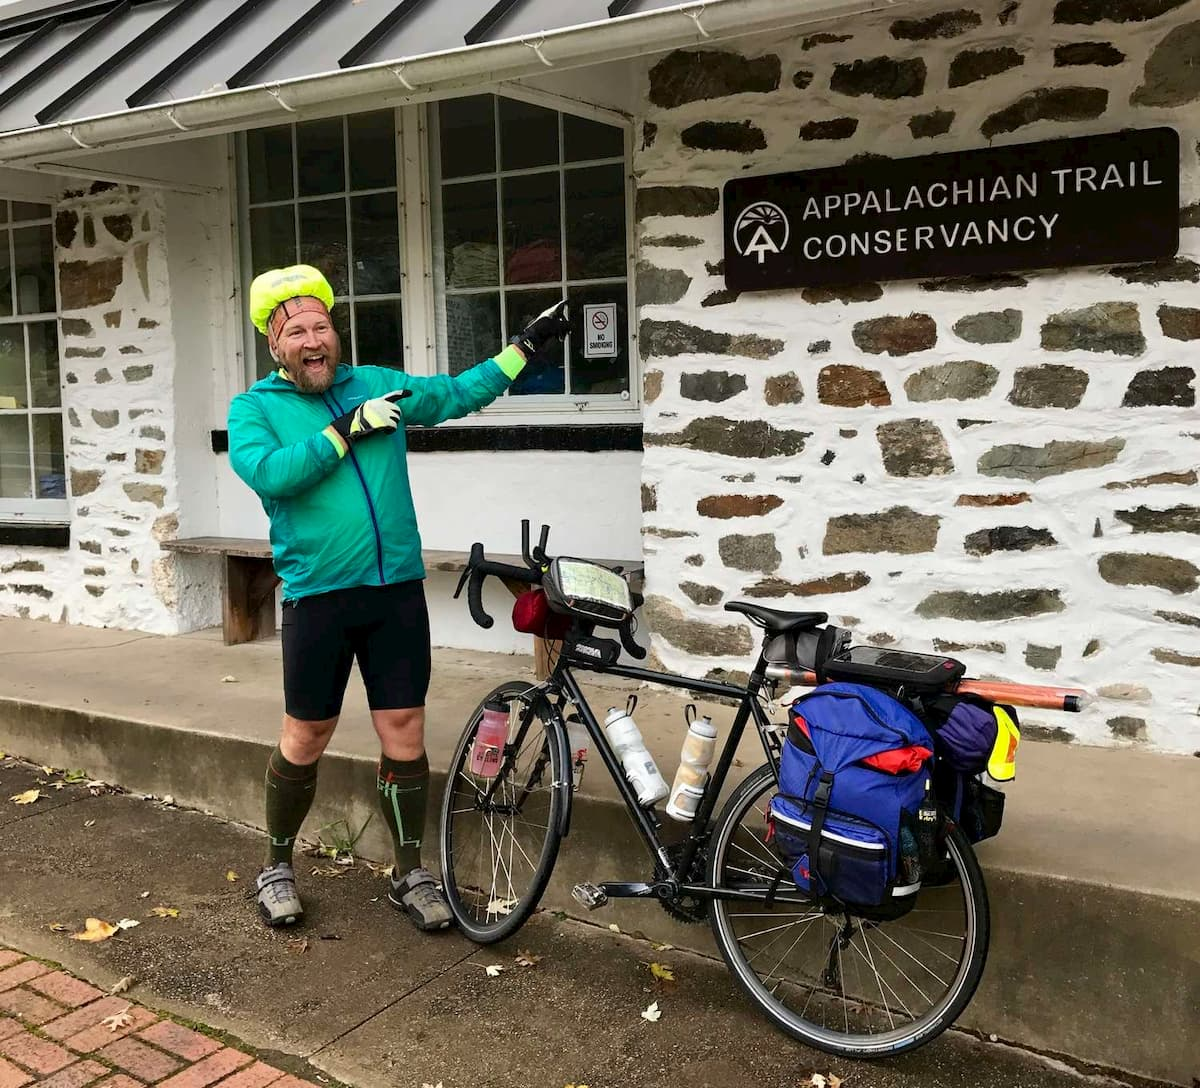 A bikepacker celebrates after reaching the Appalachian Trail Conservancy in Harpers Ferry, WV.